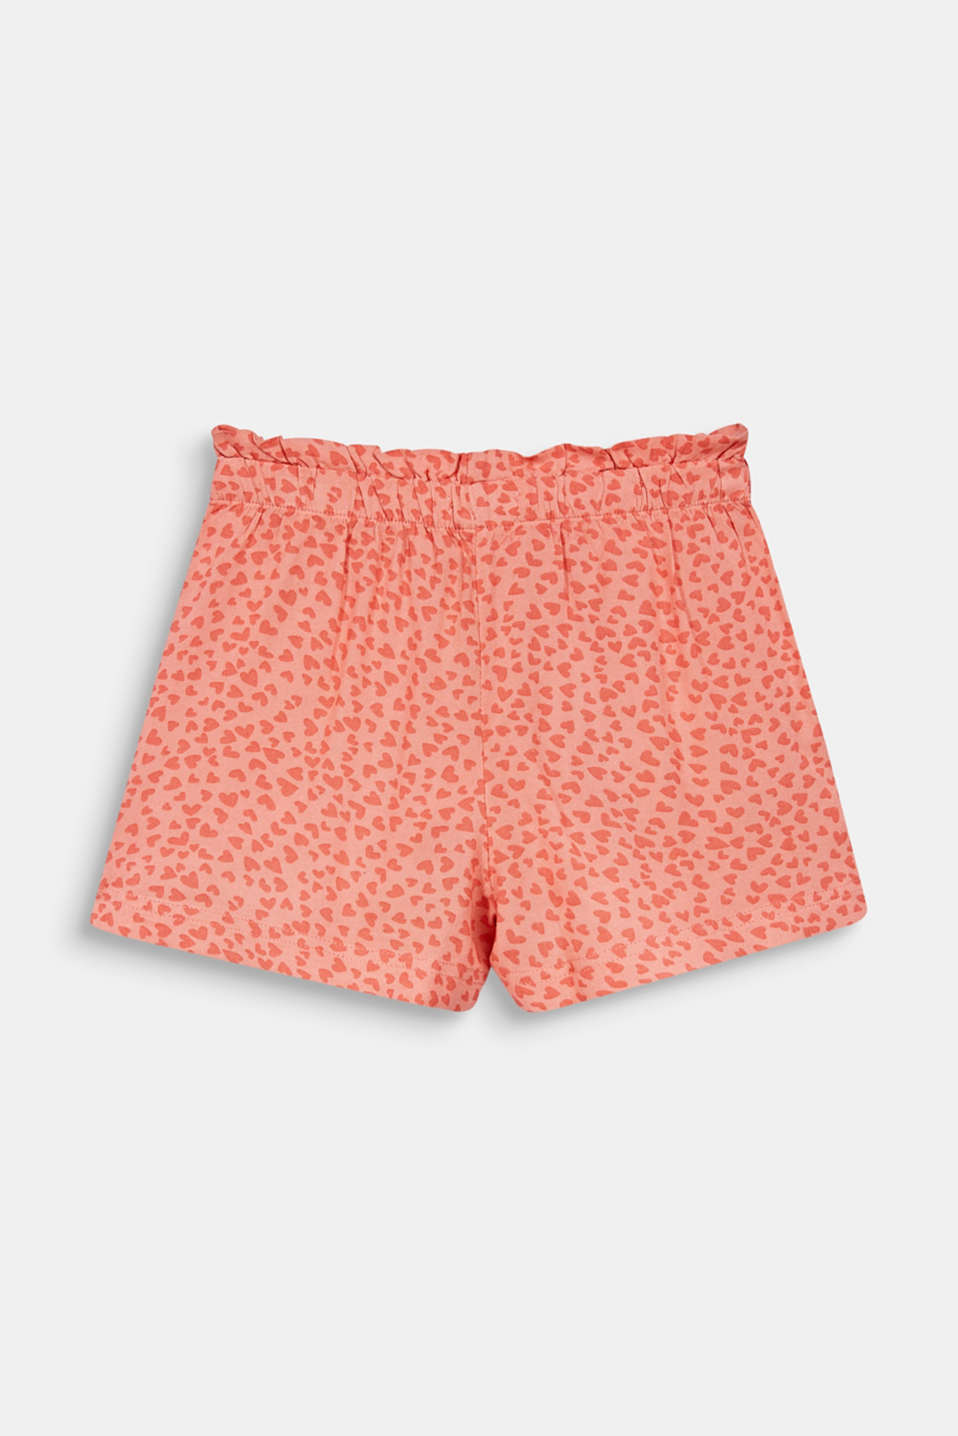 Woven shorts with a heart print, CORAL, detail image number 1